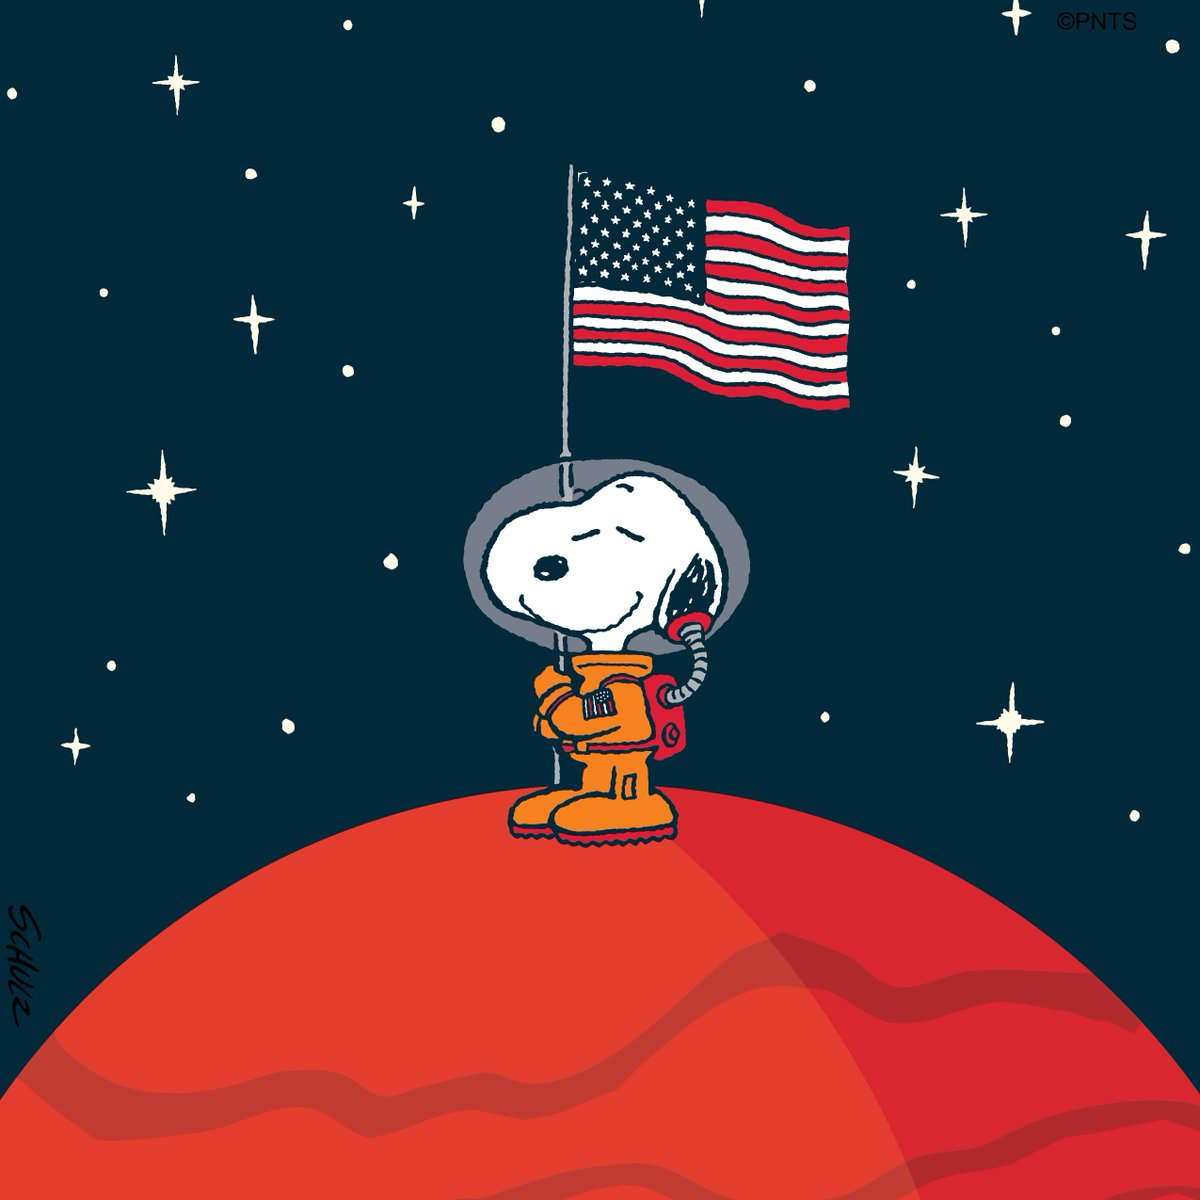 Learn all about the Red Planet during a Twitter chat between @snoopy and @MarsCuriosity taking place Monday, September 30th at 8 a.m. PT/11 a.m. ET! #AstronautSnoopy